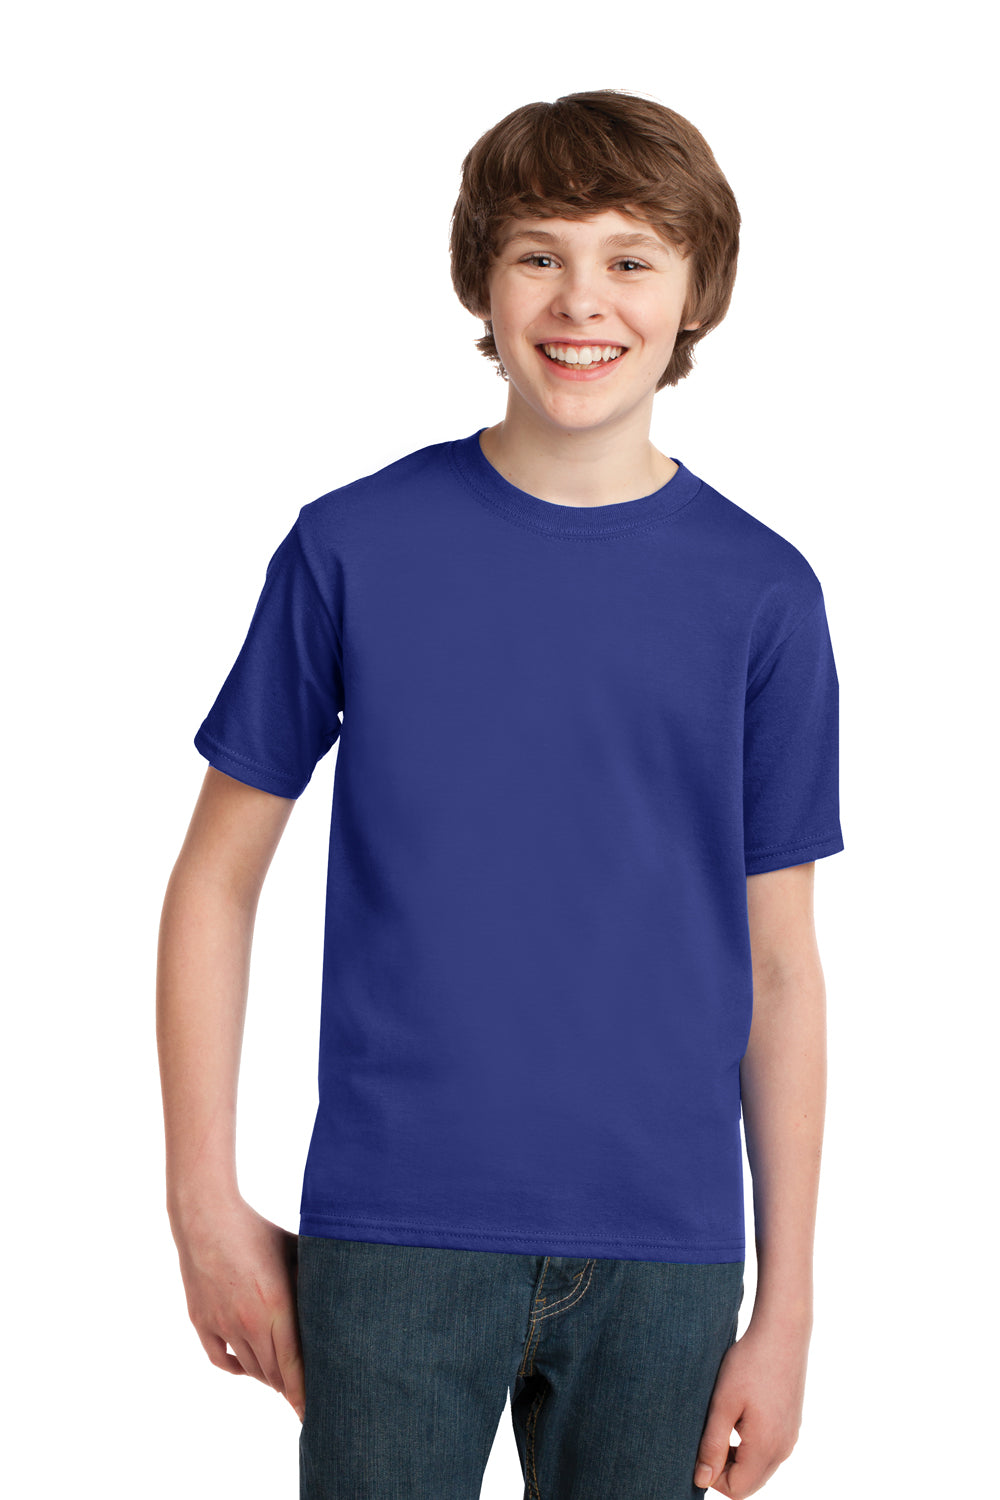 Port & Company PC61Y Youth Essential Short Sleeve Crewneck T-Shirt Deep Marine Blue Front